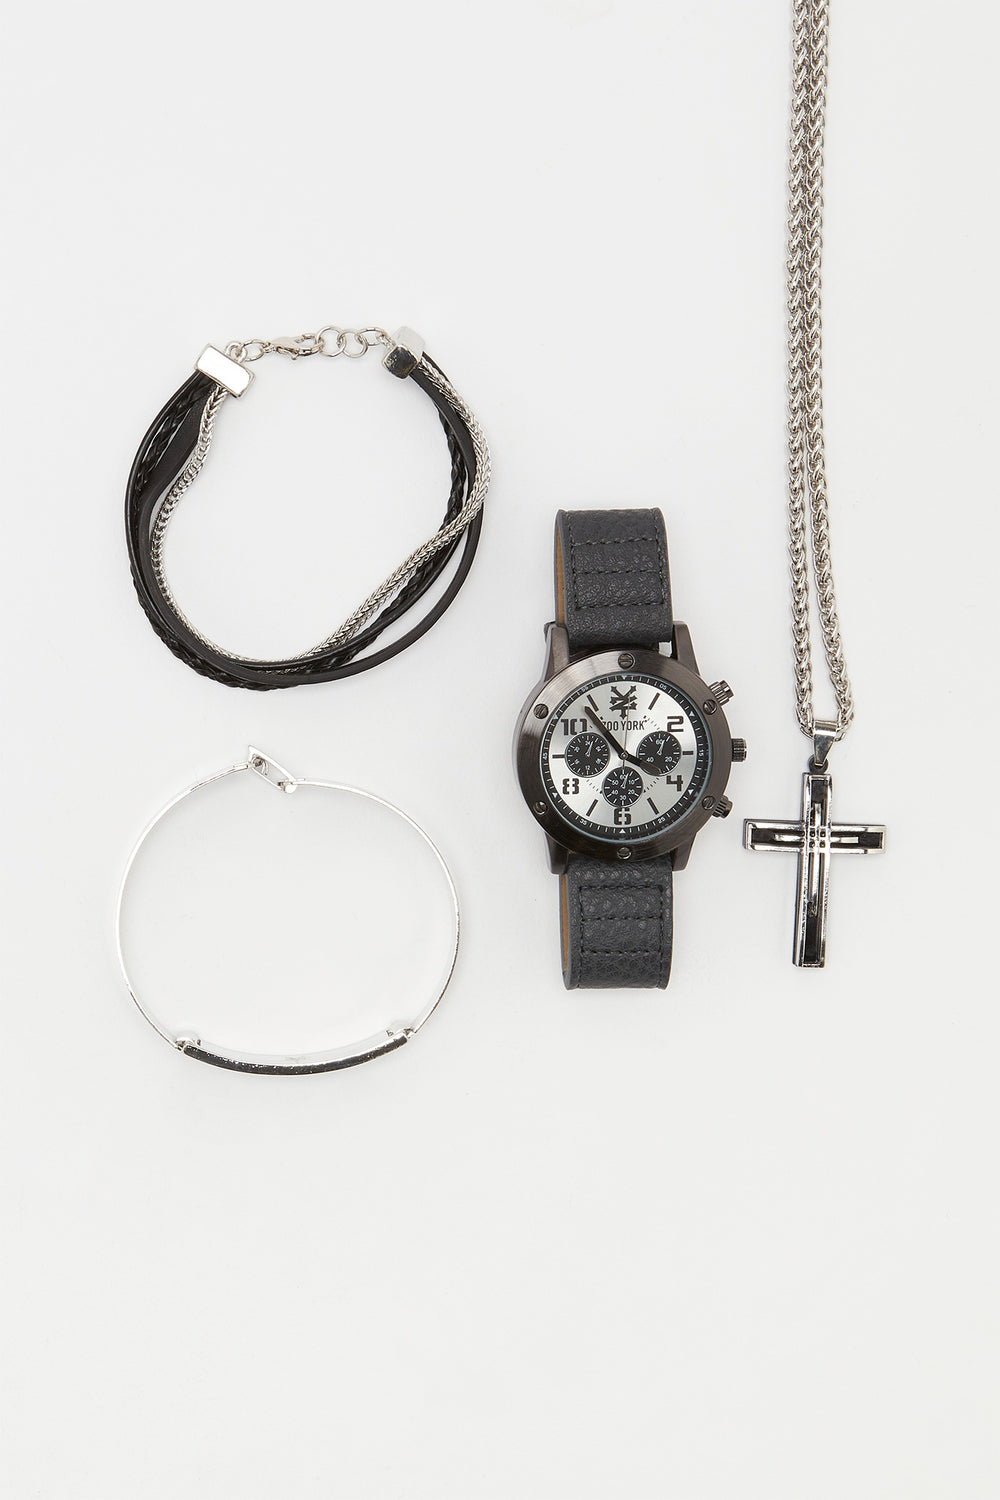 Zoo York Mens Black and Silver Tone Watch Silver